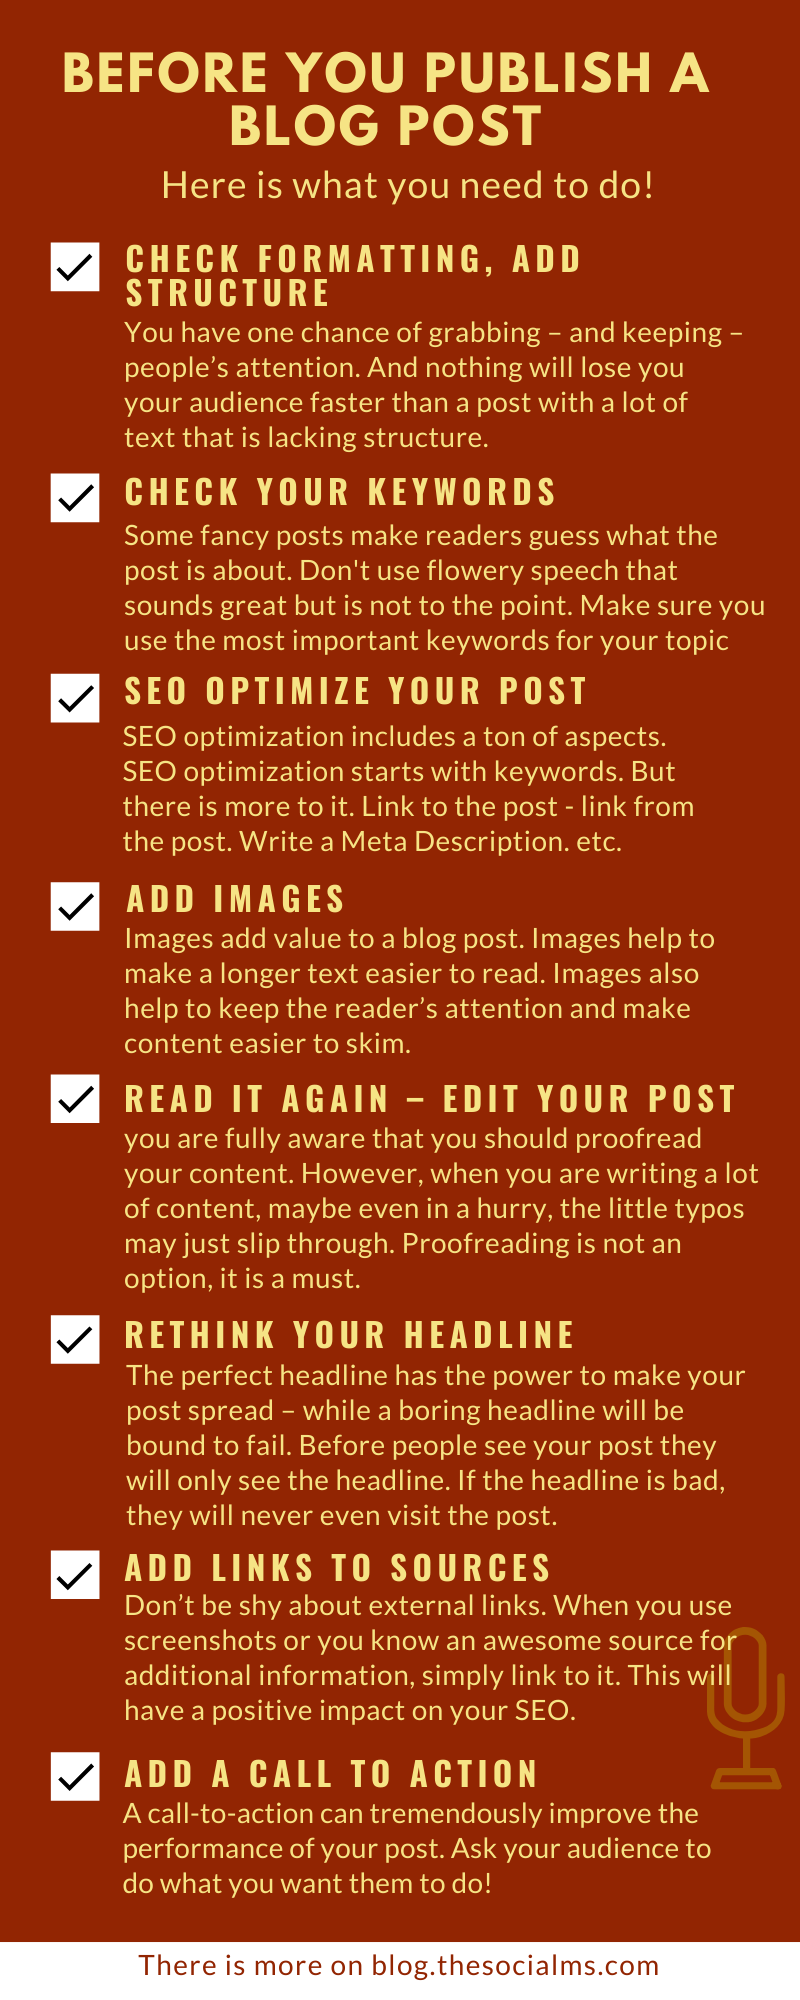 Blogging is not simply writing and publishing a text. Even if it is a good text. A good blogger has a ton of tasks that already start long before the blogger even starts to write a blog. here are some things you absolutely need to do BEFORE you publish a blog post. #bloggingtips #blogwriting #blogpostcreation #blogcontent #blogging101 #bloggingforbeginners #startablog